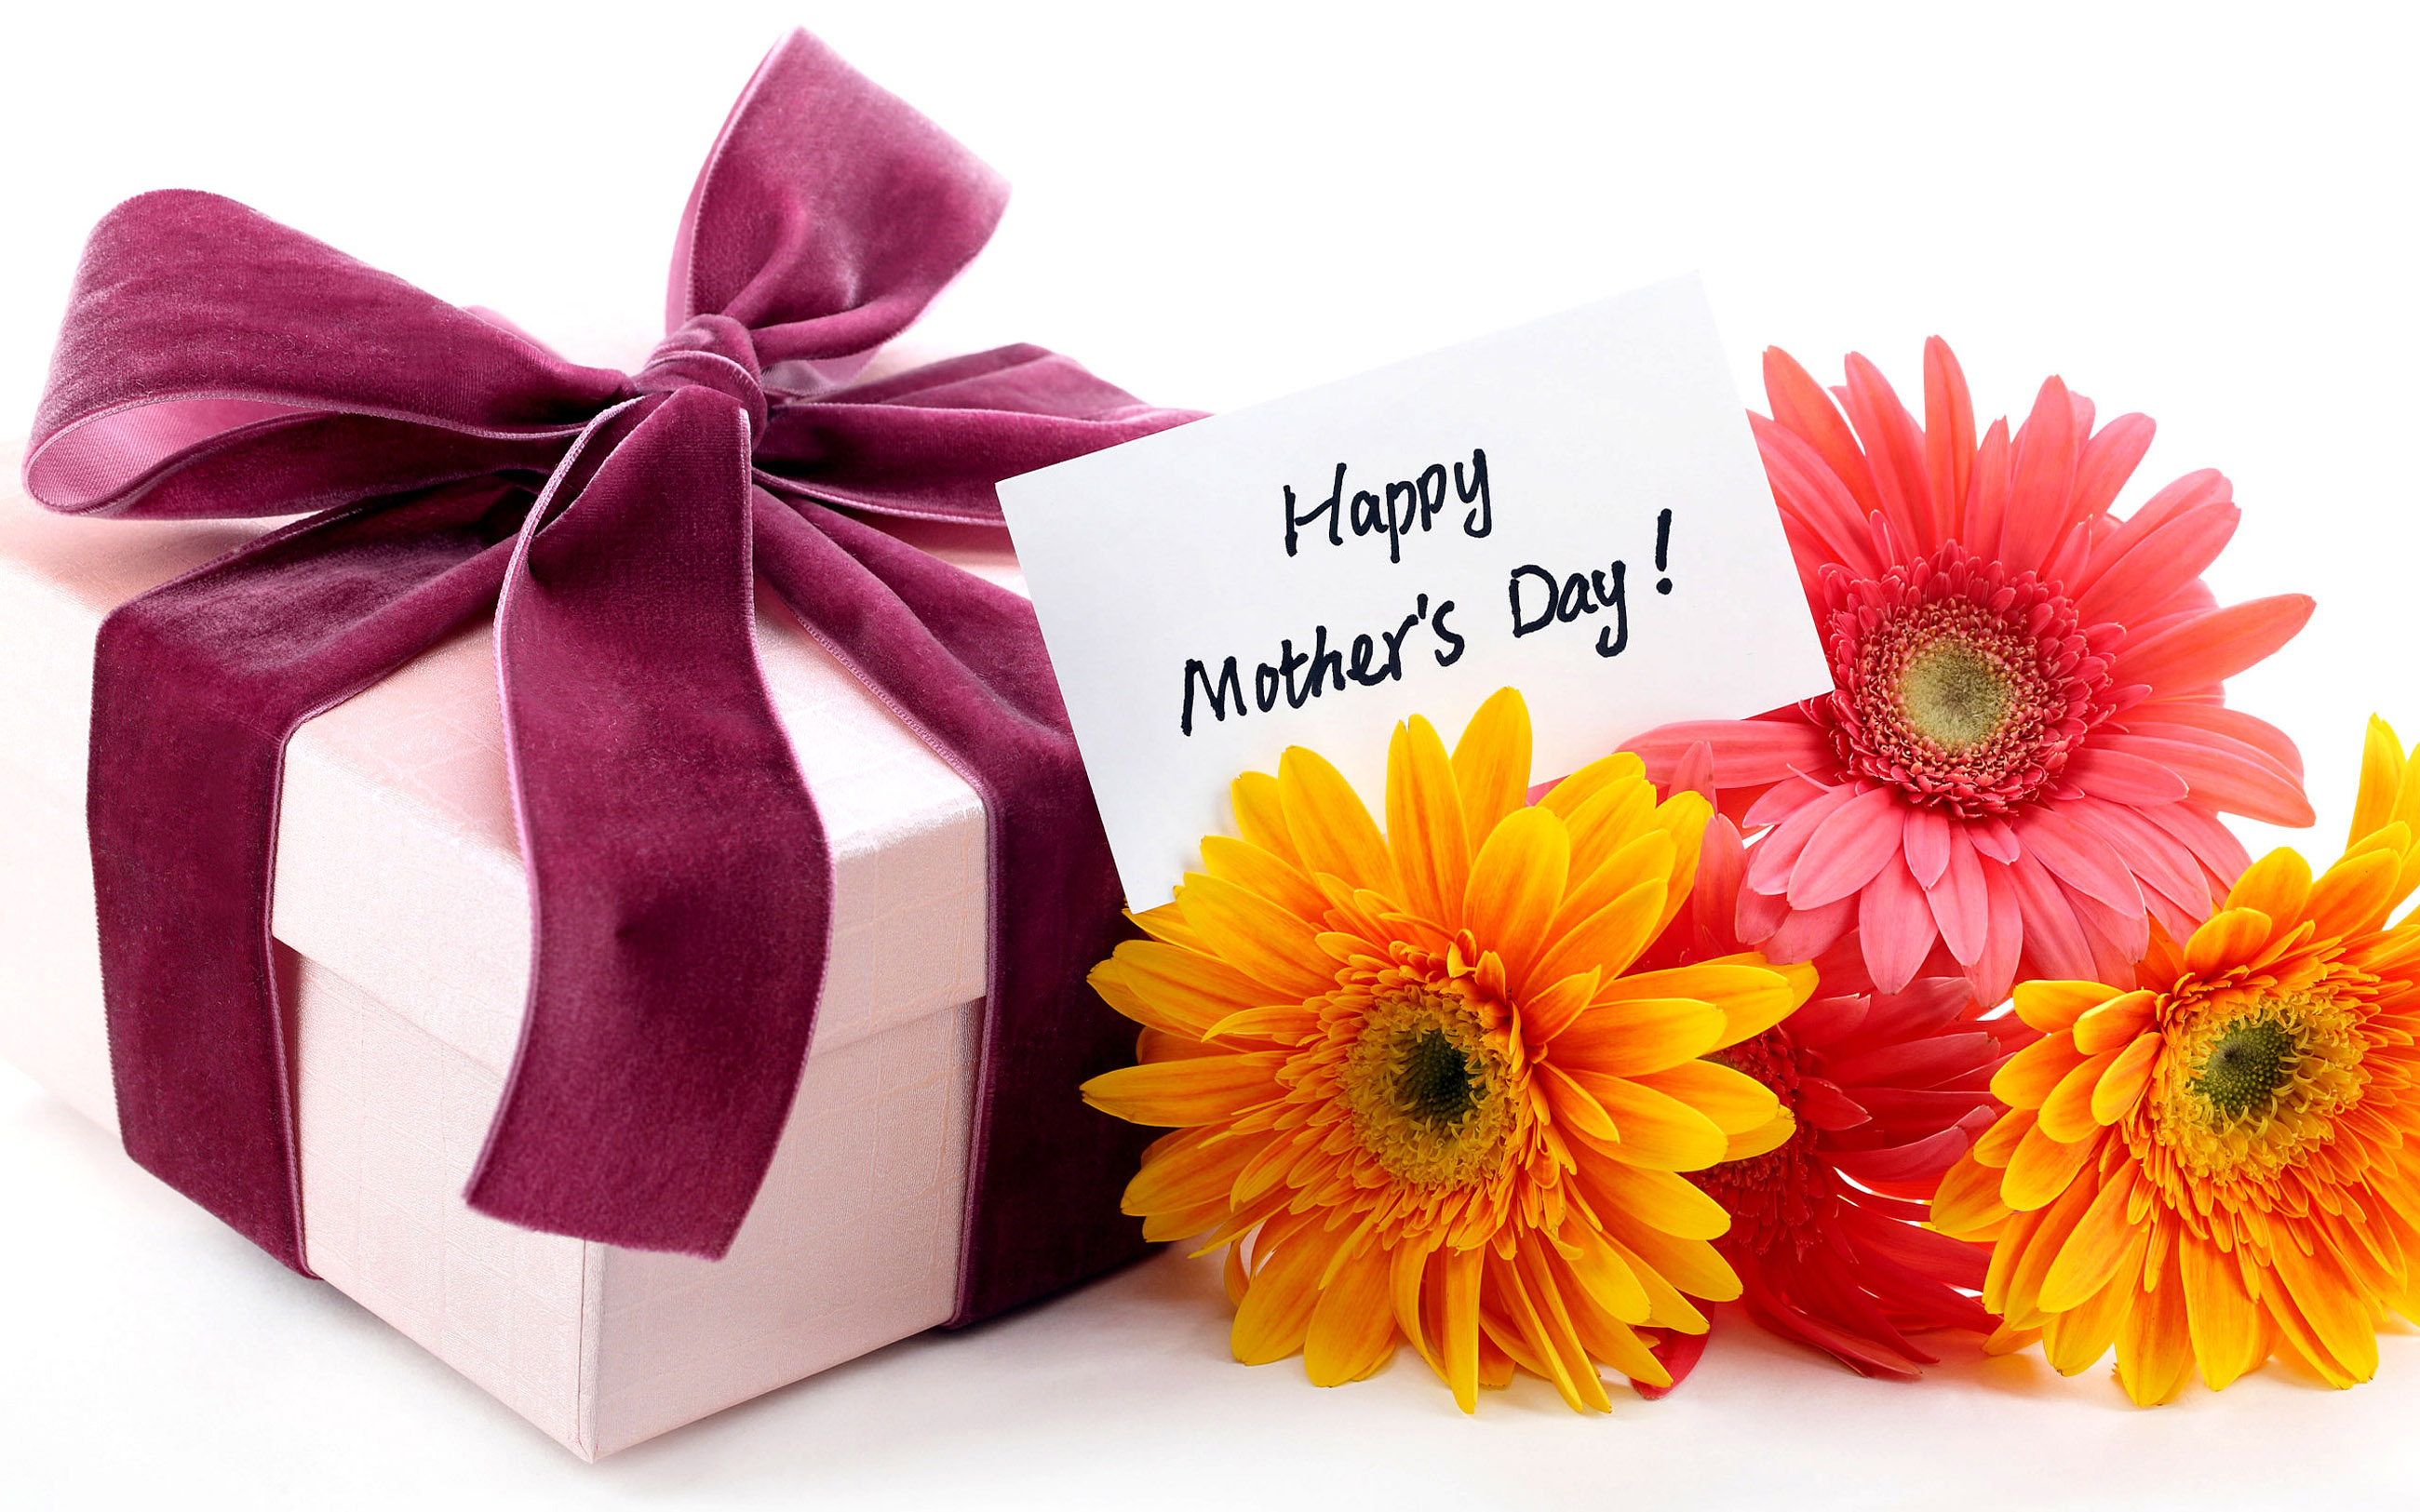 Happy Mothers Day Cards 36442 - Women